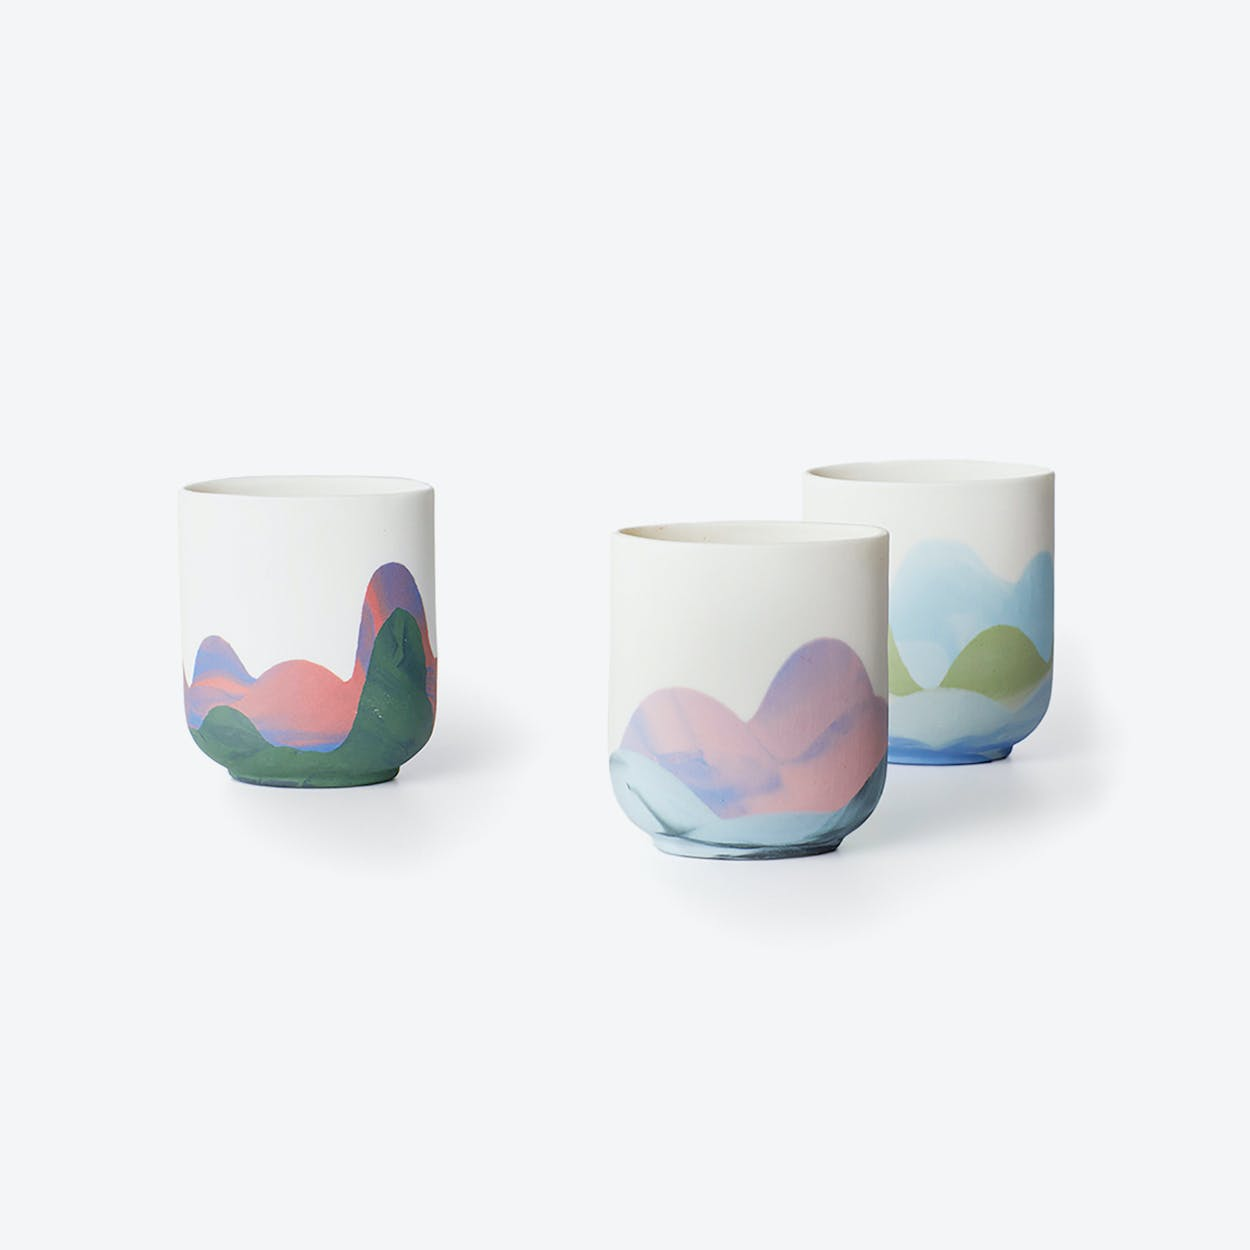 Porcelain Hong Kong Inspired Espresso Cups - Mixed - Set of 4